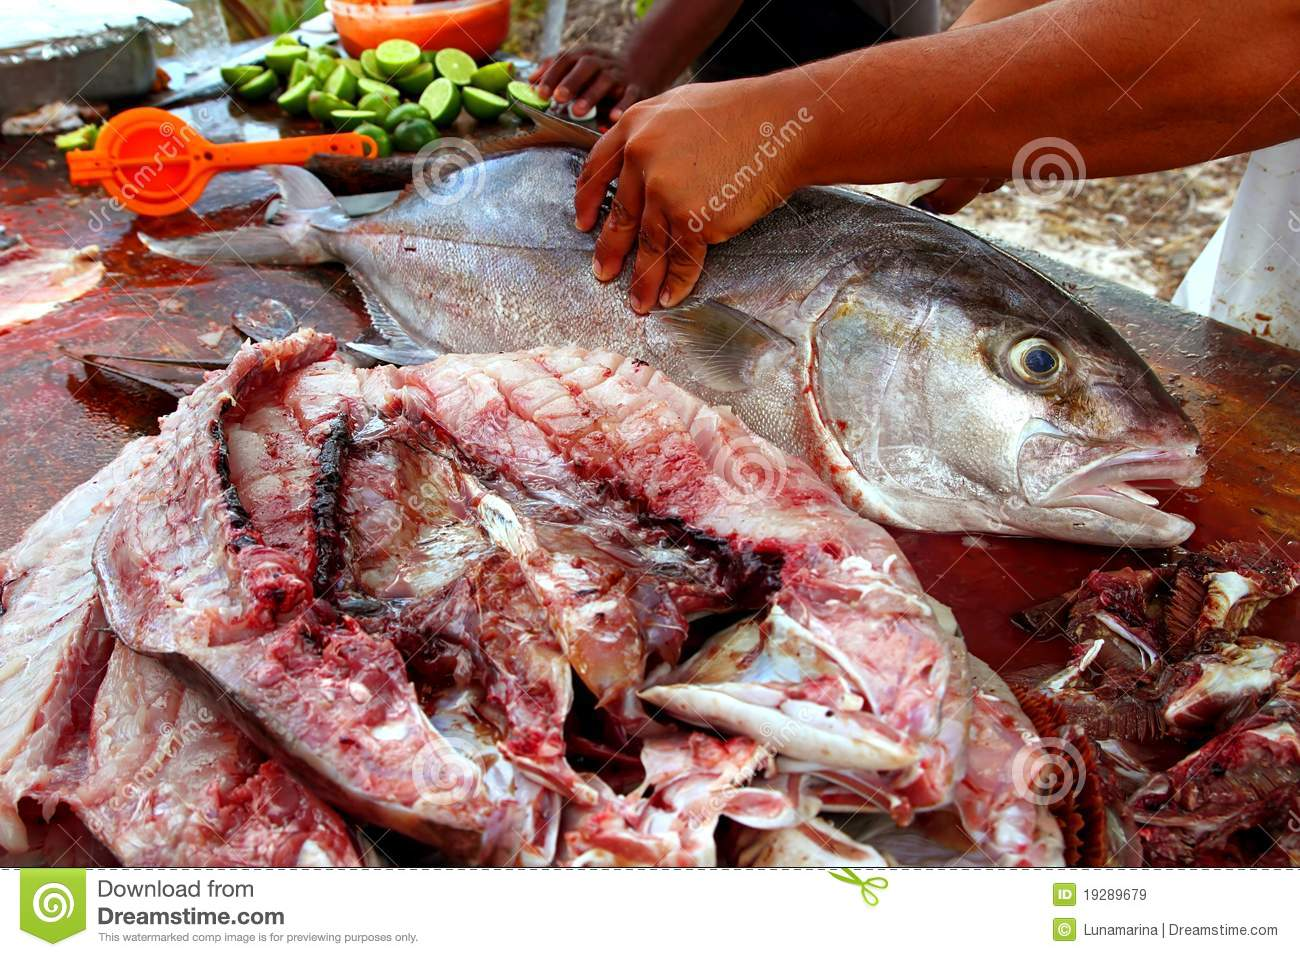 Fishmonger preparing amberjack fish fillet royalty free for Amberjack fish recipes